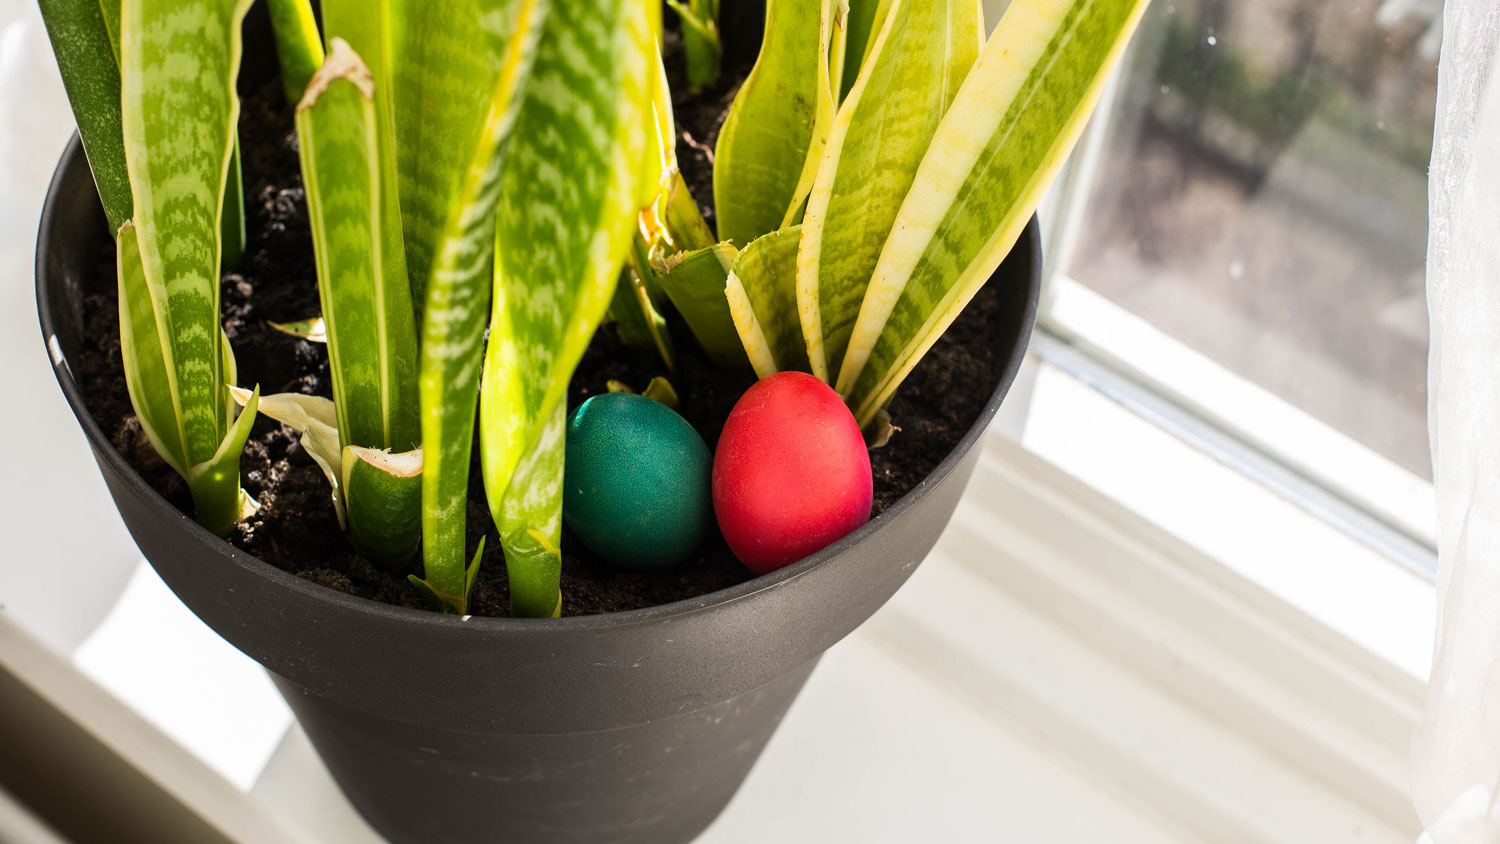 THE BEST SPOTS TO HIDE EASTER EGGS IN YOUR HOME